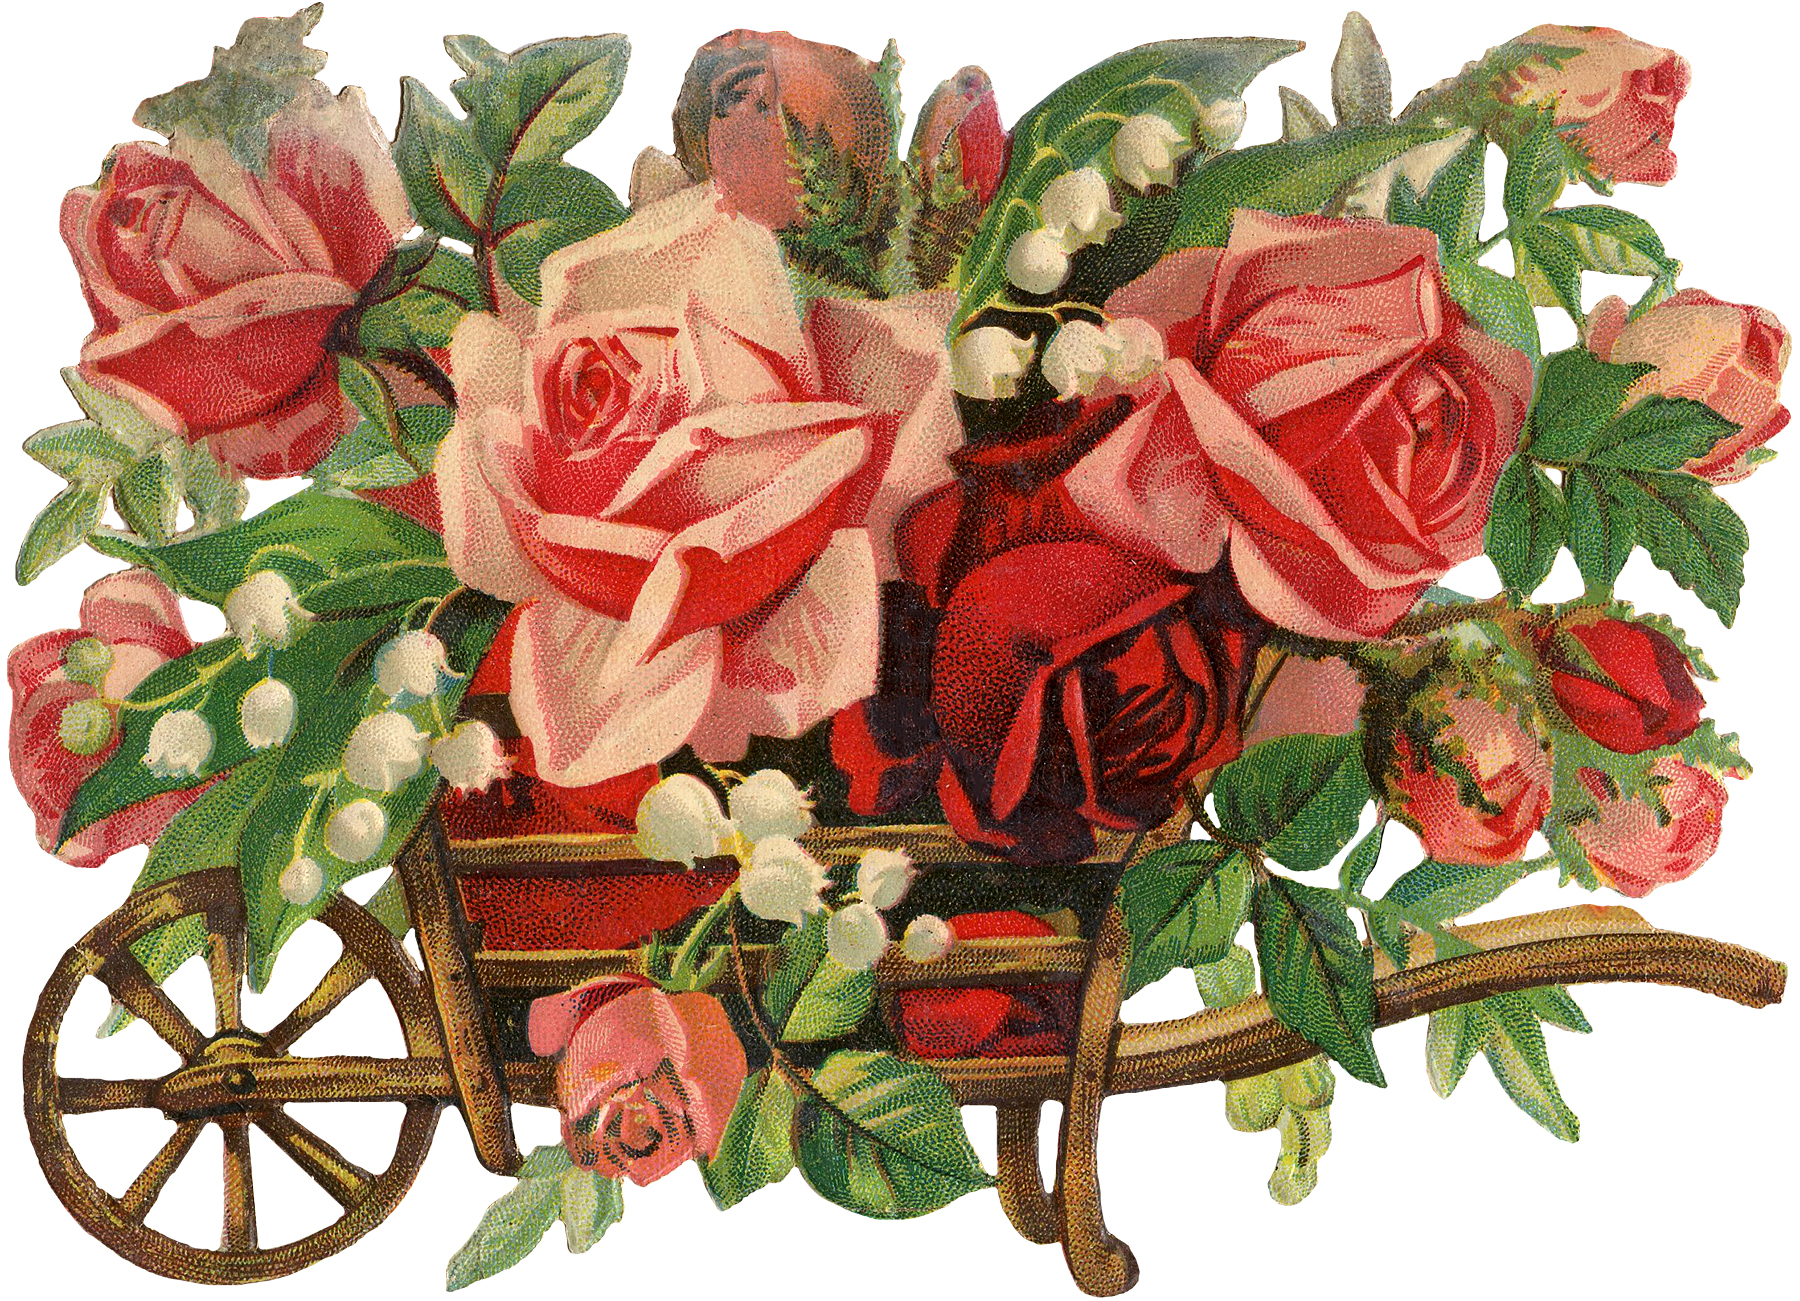 Wooden roses clipart svg black and white download Vintage Peach Roses in Wooden Wheelbarrow Image! - The ... svg black and white download